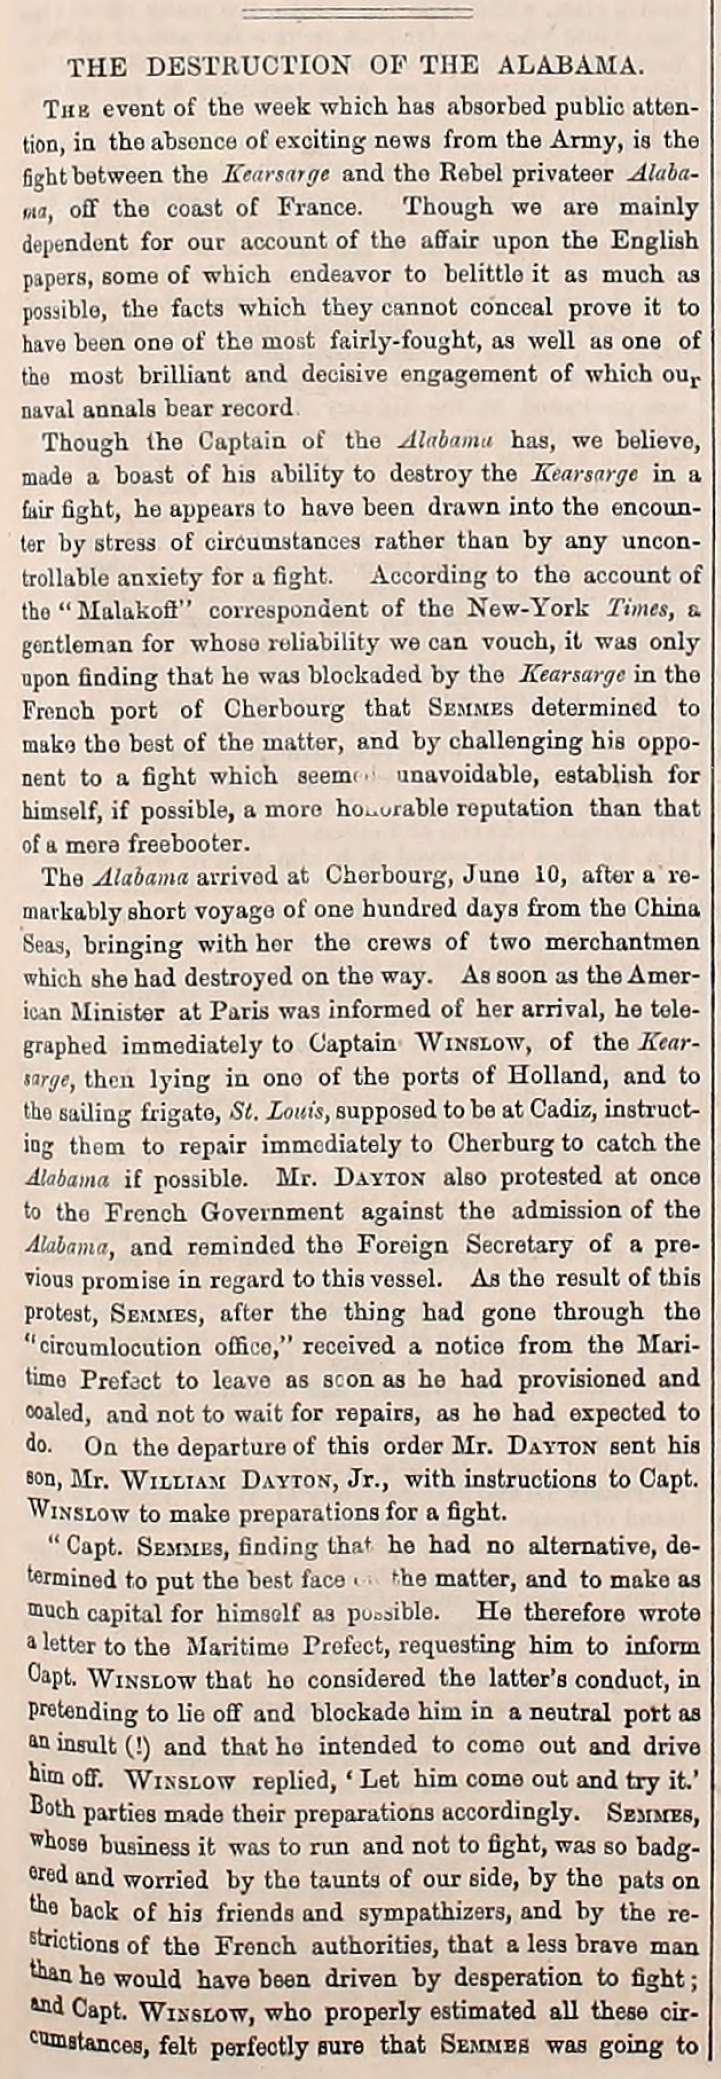 Army Navy Journal article on the June 19, 1864 sinking of the CSS Alabama by the USS Kearsarge off the coast of Cherbourg, France